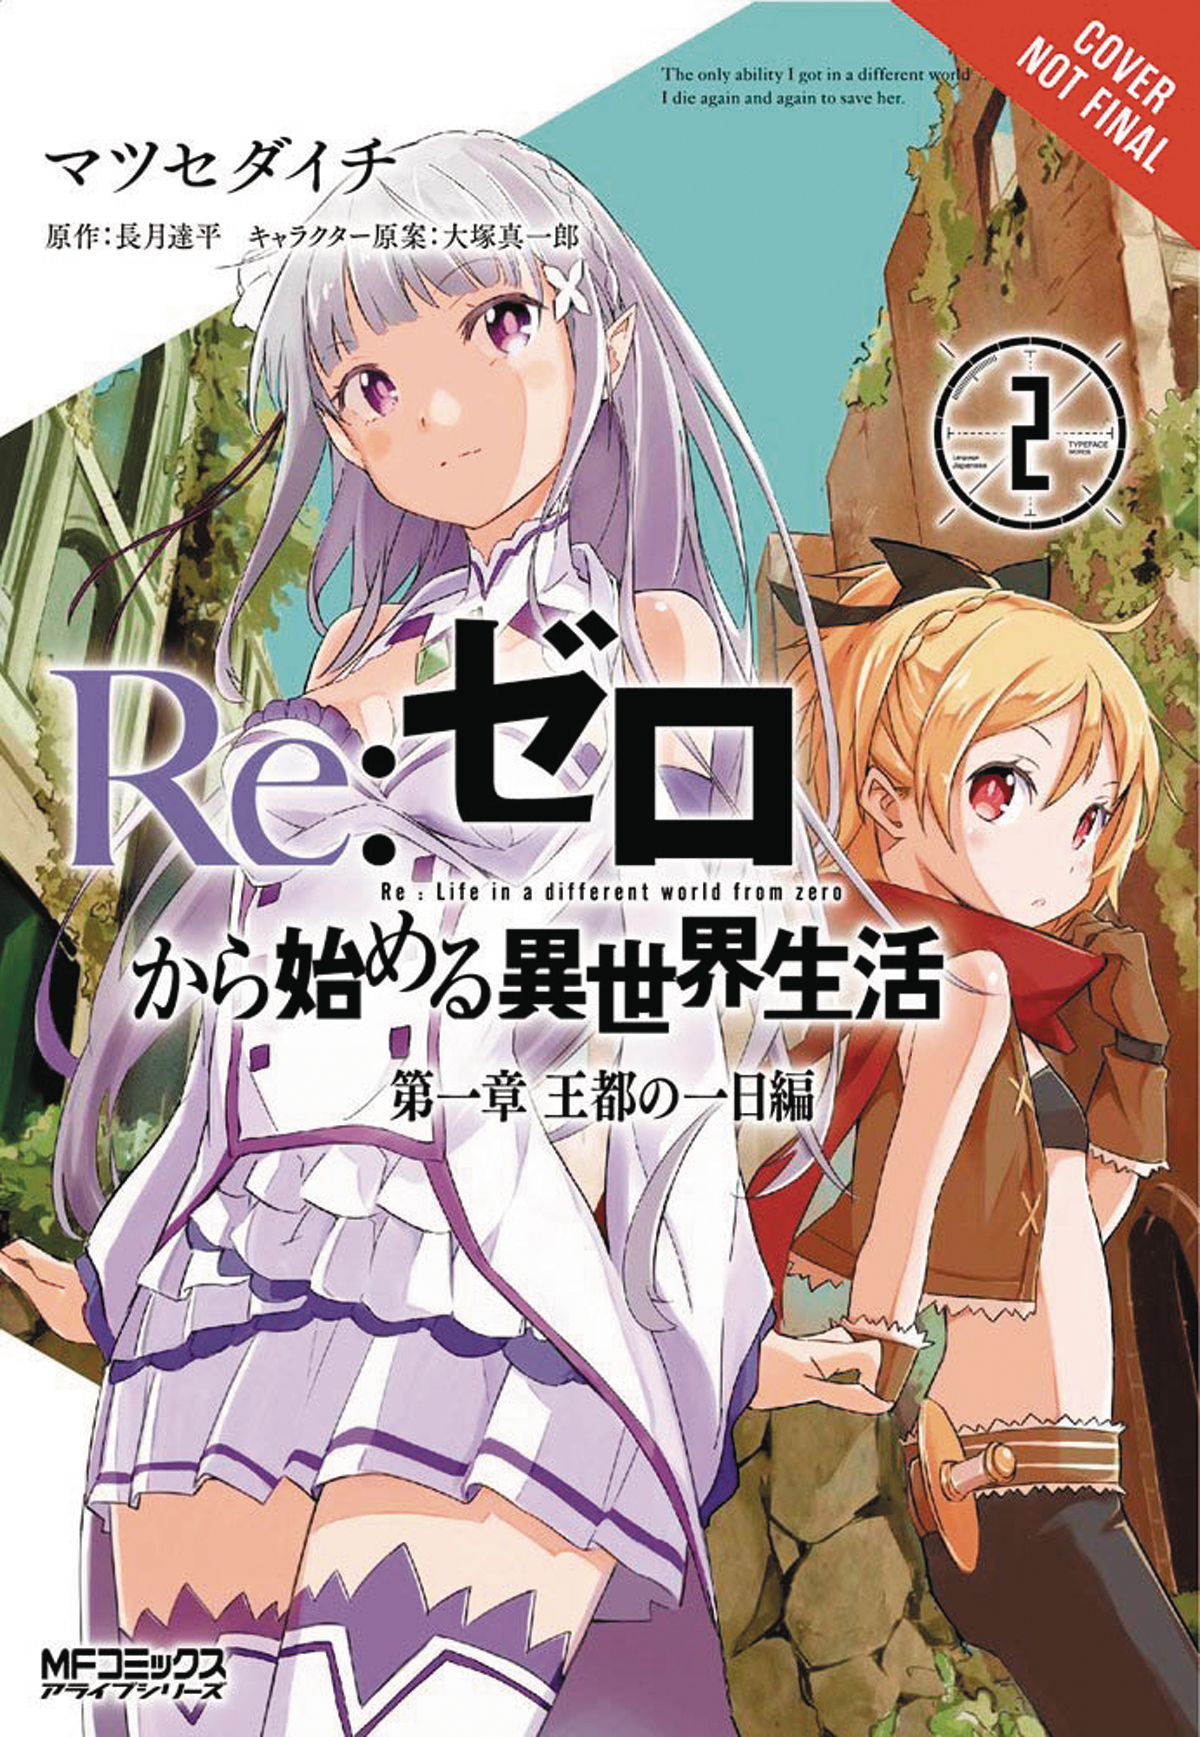 RE ZERO SLIAW CHAPTER 2 WEEK MANSION GN VOL 01